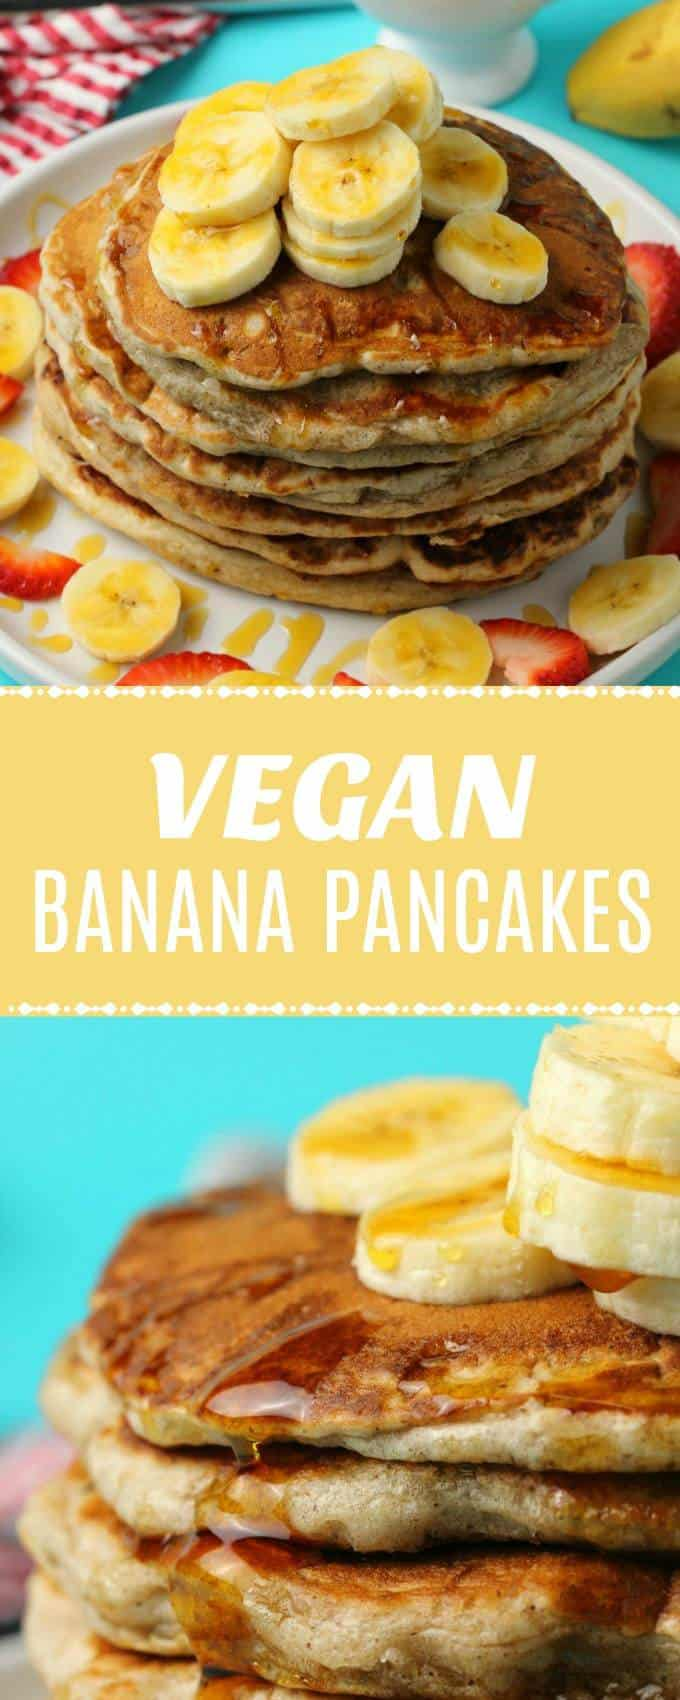 Easy vegan banana pancakes! Perfect for a delicious vegan breakfast topped with sliced bananas and syrup. Light, fluffy and perfect. | lovingitvegan.com